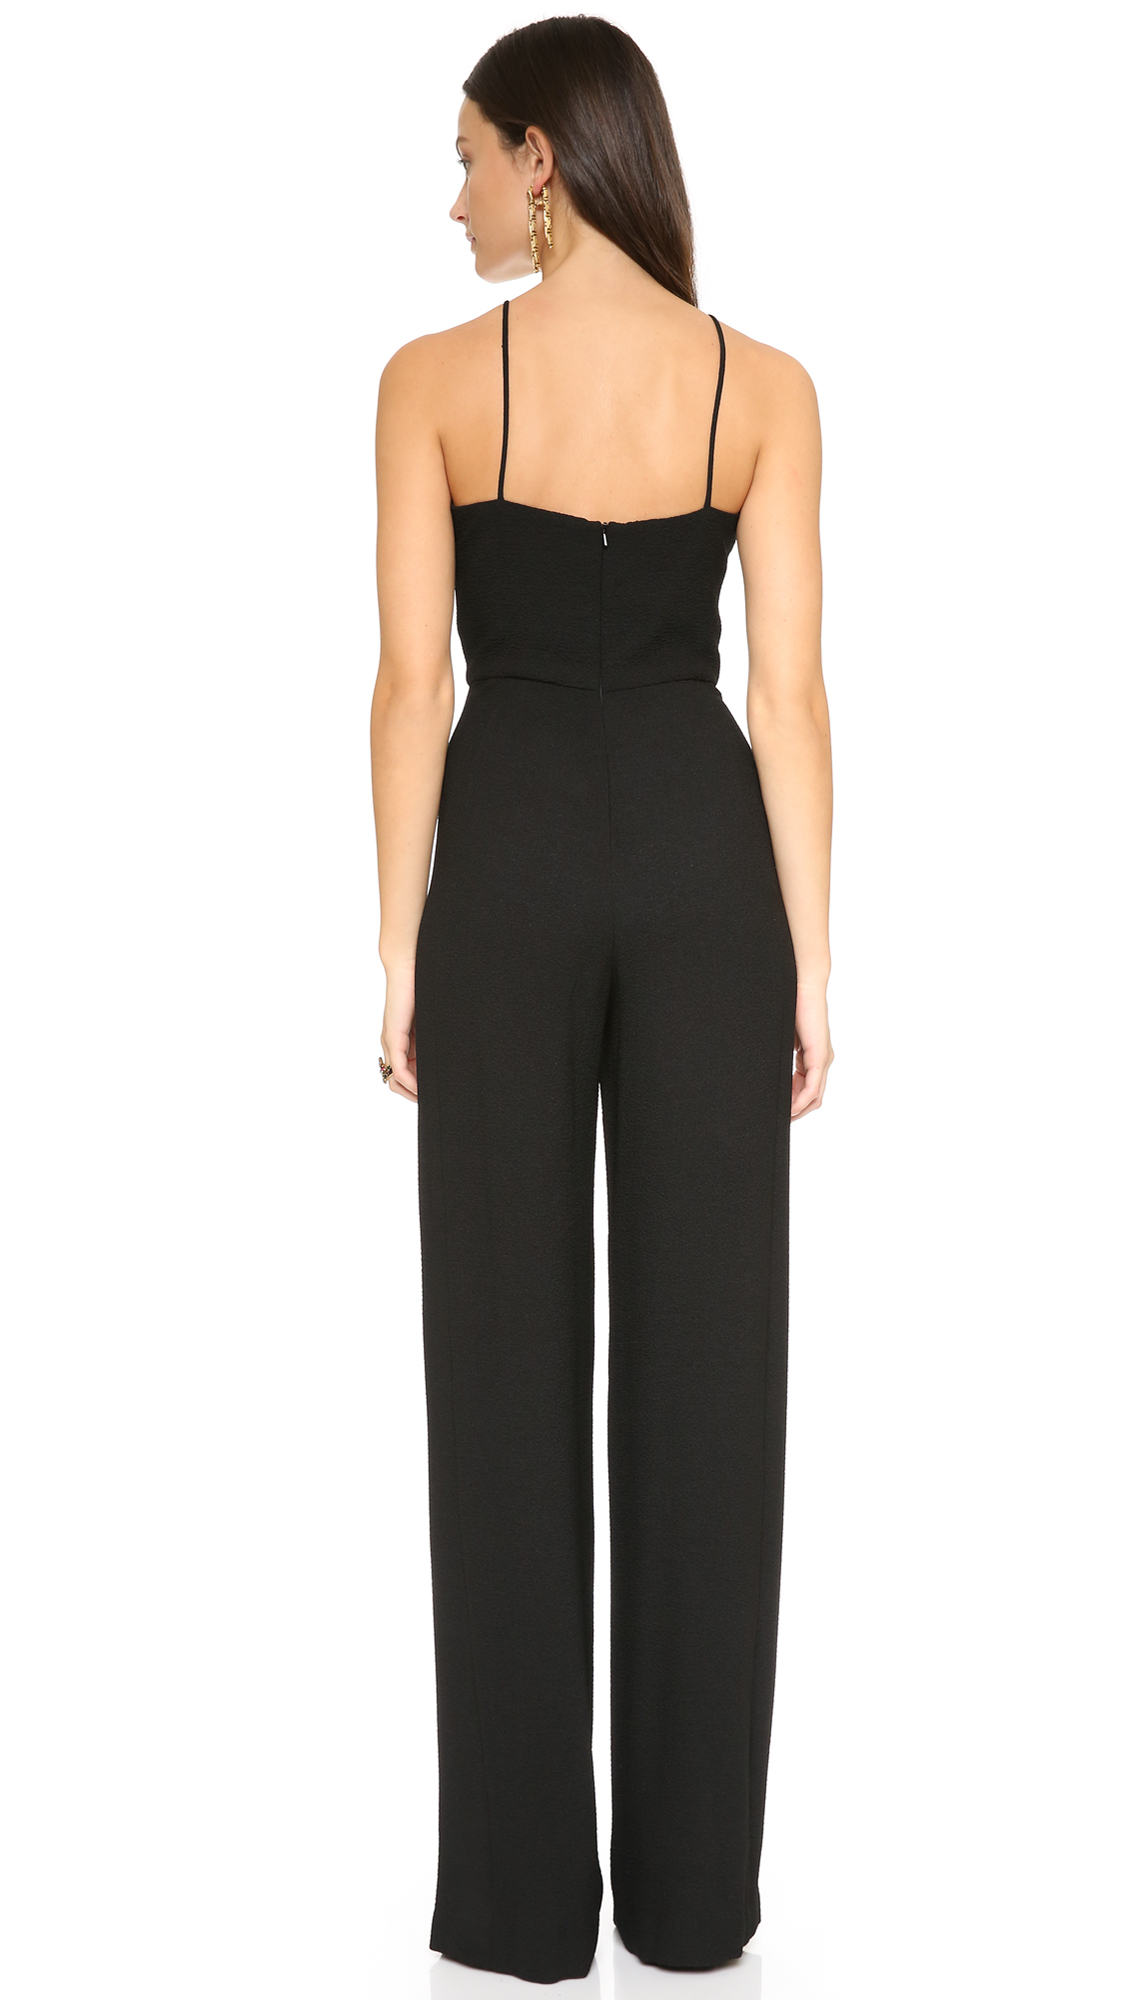 Model NEW Bird Keepers Womens Jumpsuits The Overlay Jumpsuit Black | EBay